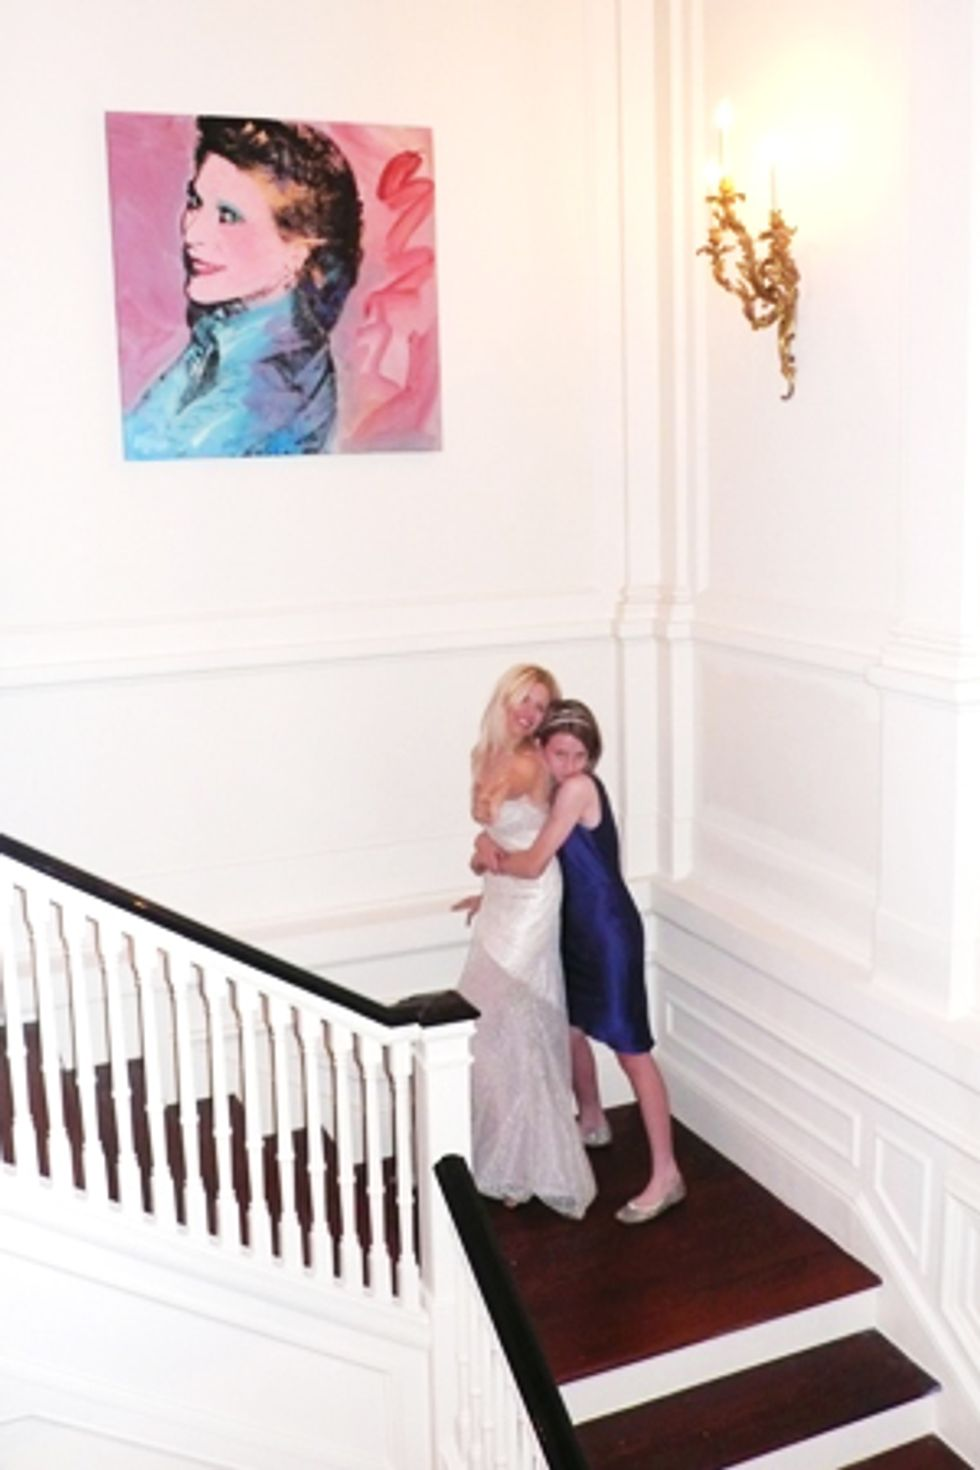 Justina McCaffrey Couture and Cocktails at the Kempners